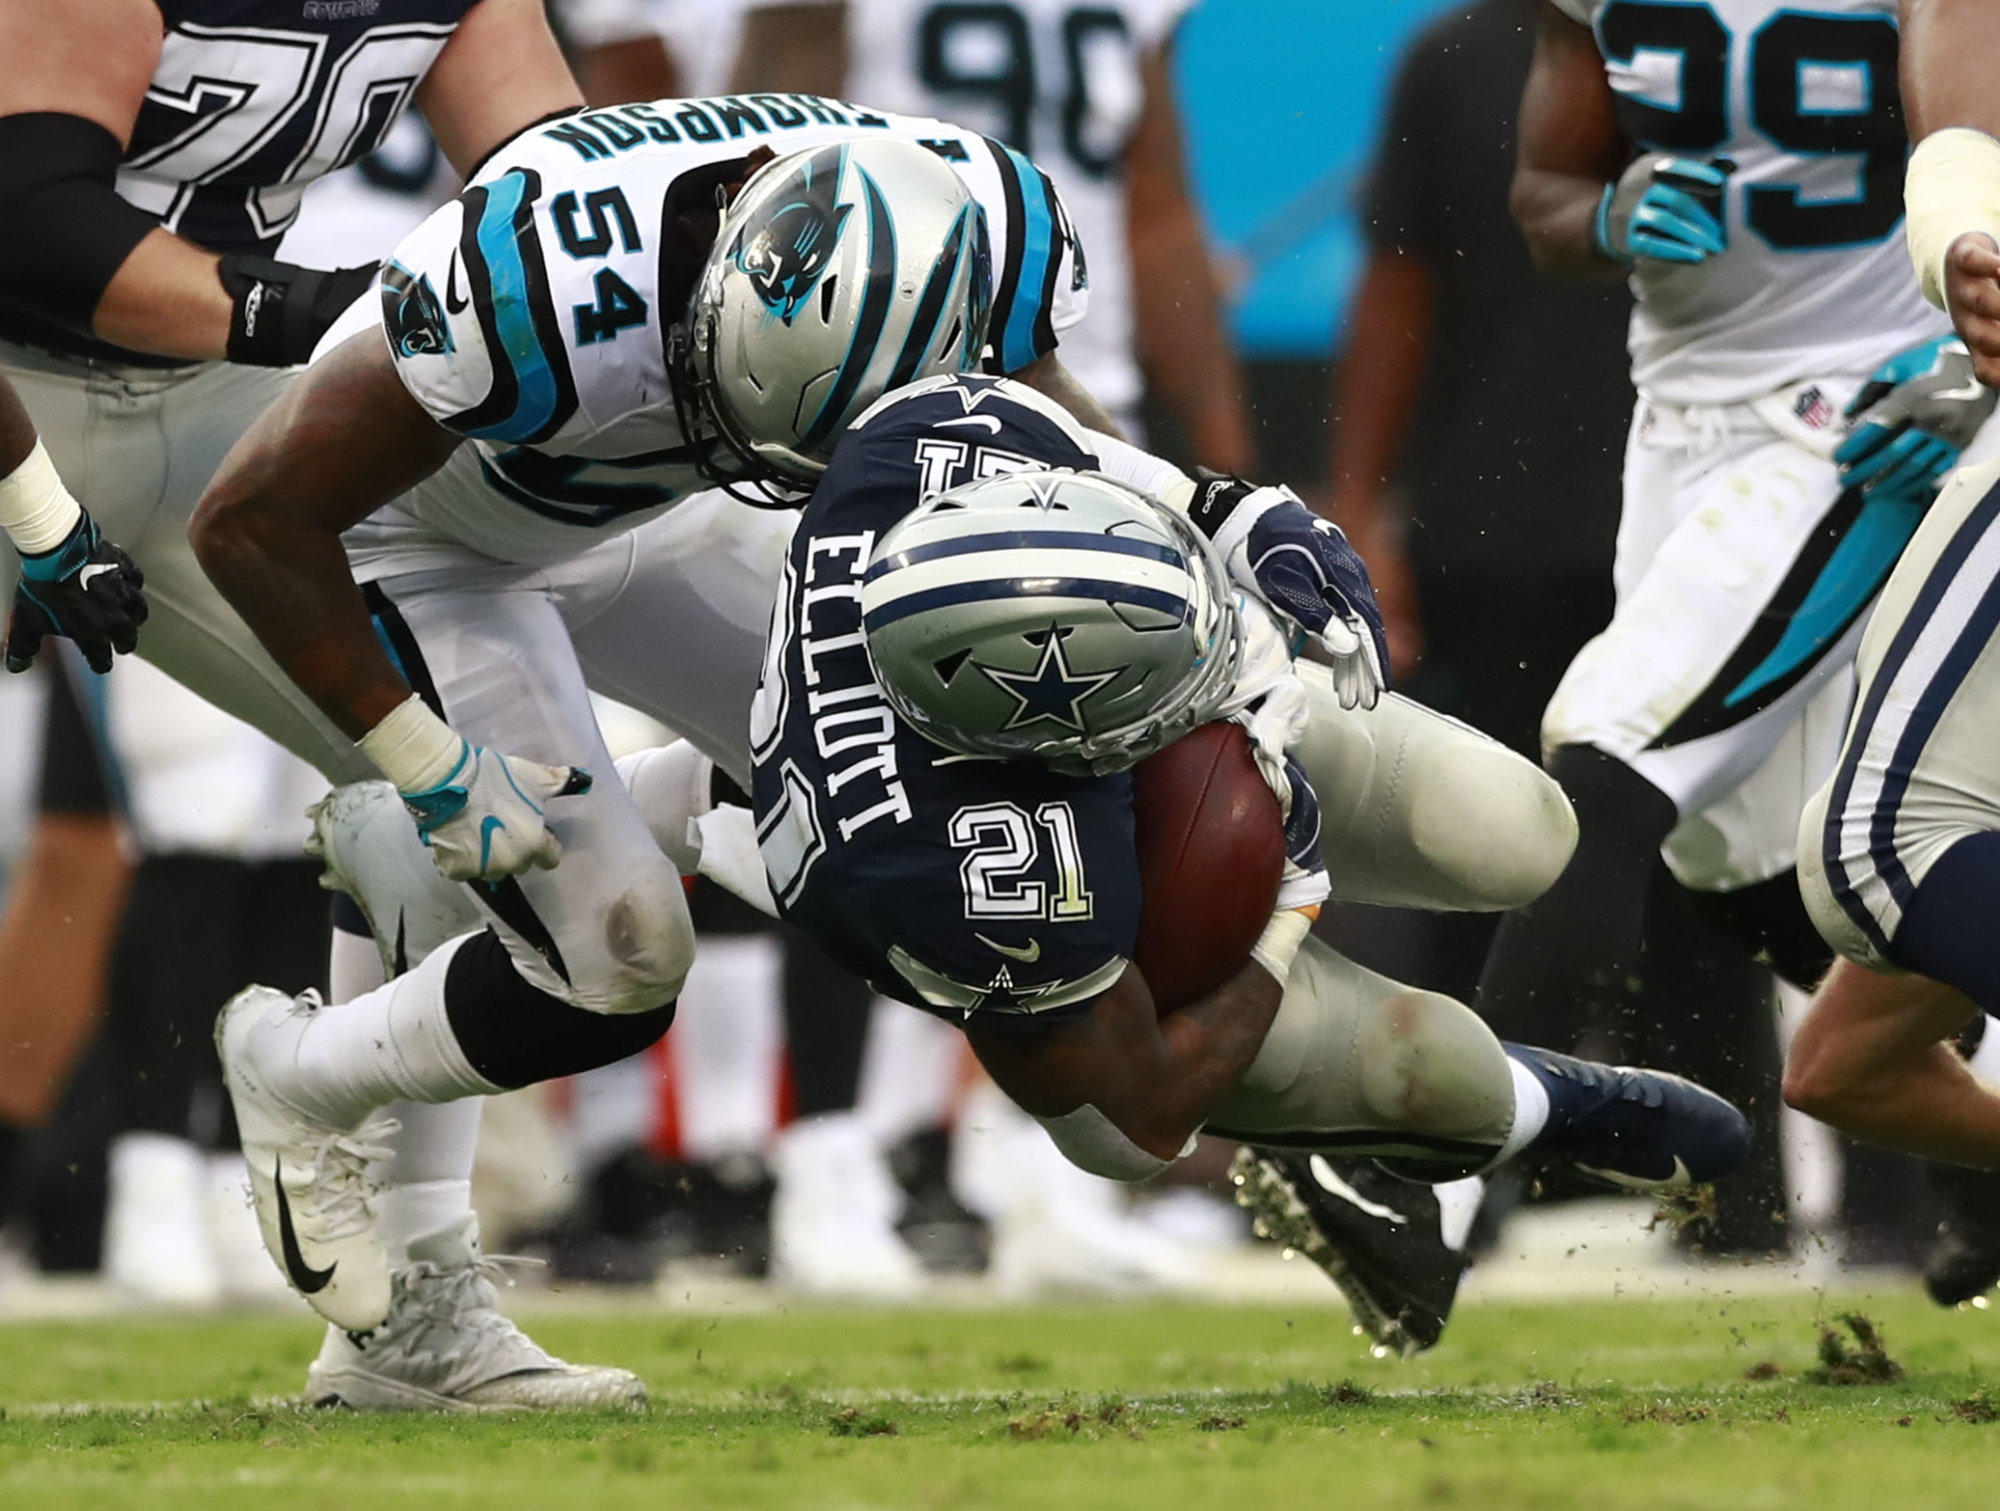 Carolina Panthers' Shaq Green-Thompson (54) tackles Dallas Cowboys' Ezekiel Elliott (21) during the second half of an NFL football game in Charlotte, N.C., Sunday, Sept. 9, 2018. (AP Photo/Jason E. Miczek)